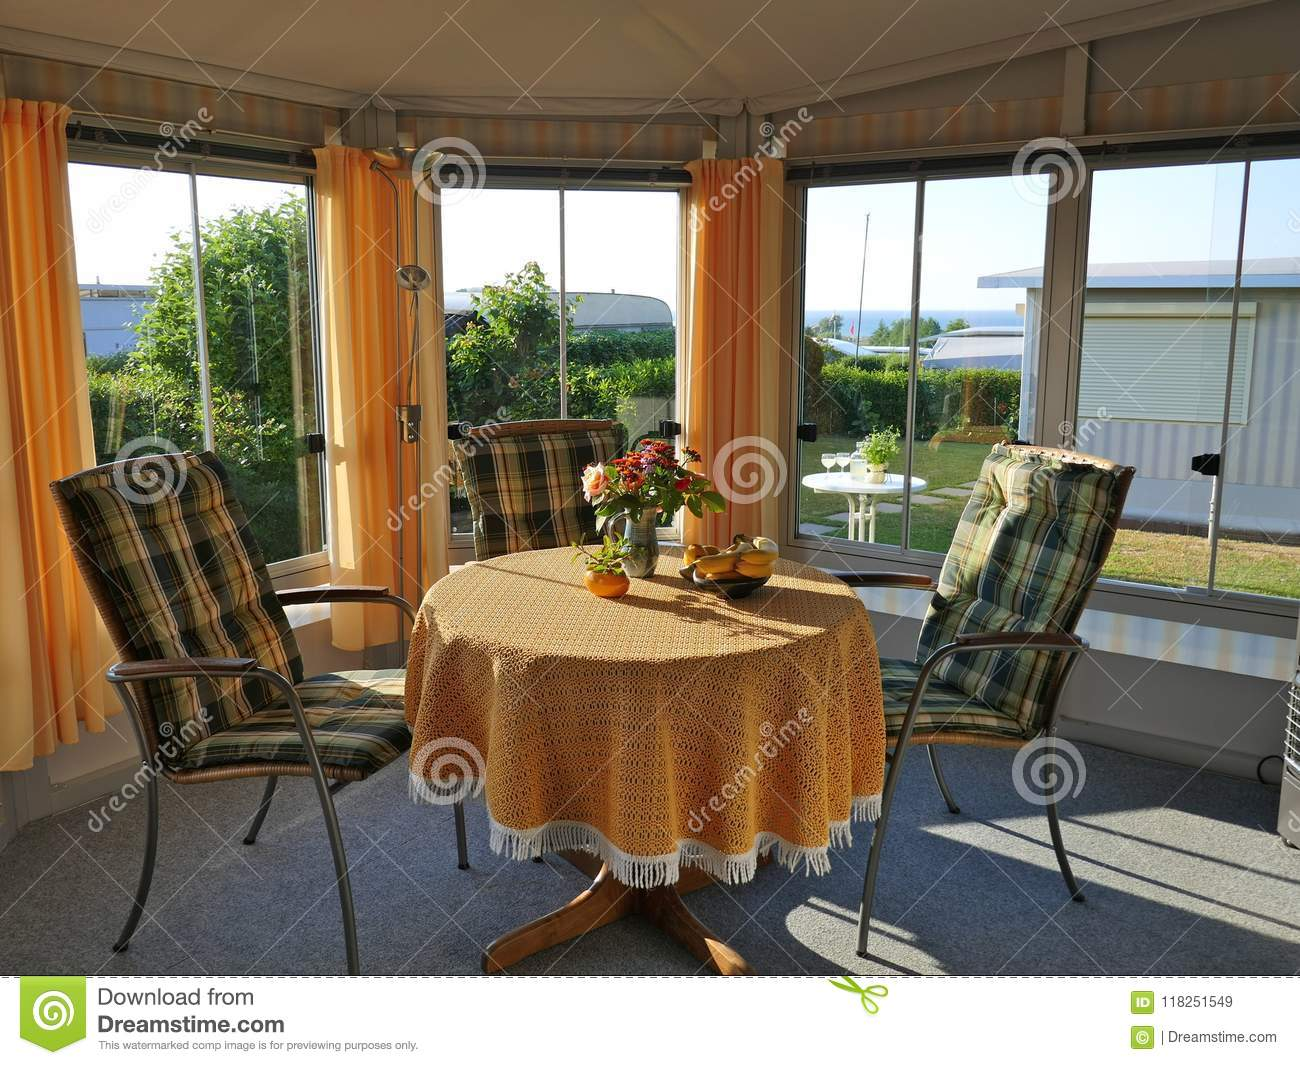 Caravan with a fixed porch, made of awning fabric, glass sliding windows and blinds on a German campsite.